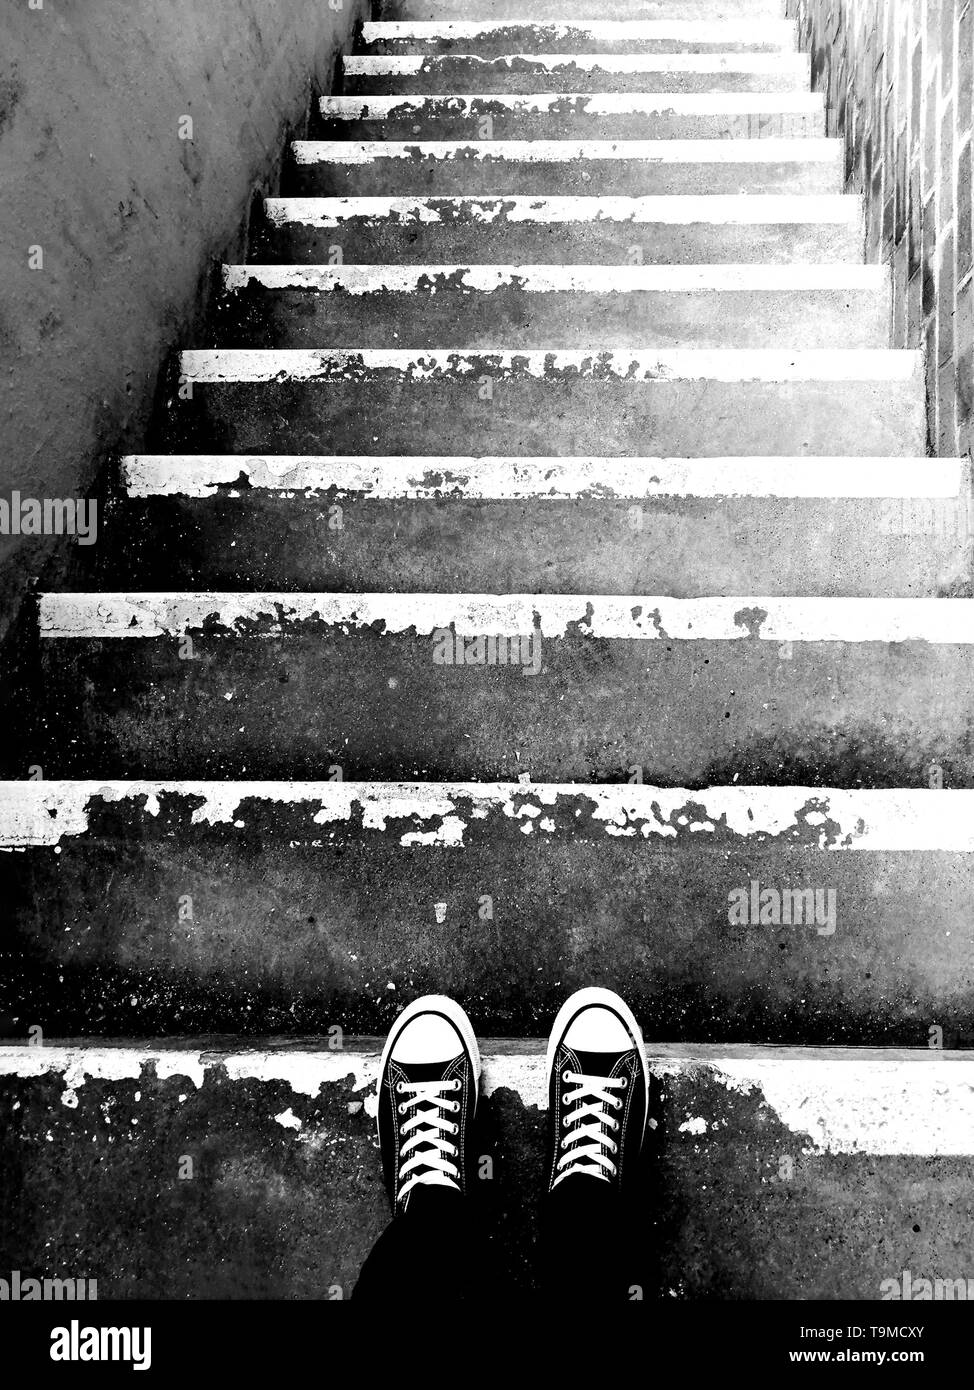 Feet at the top of stairs perspective from top to bottom. - Stock Image